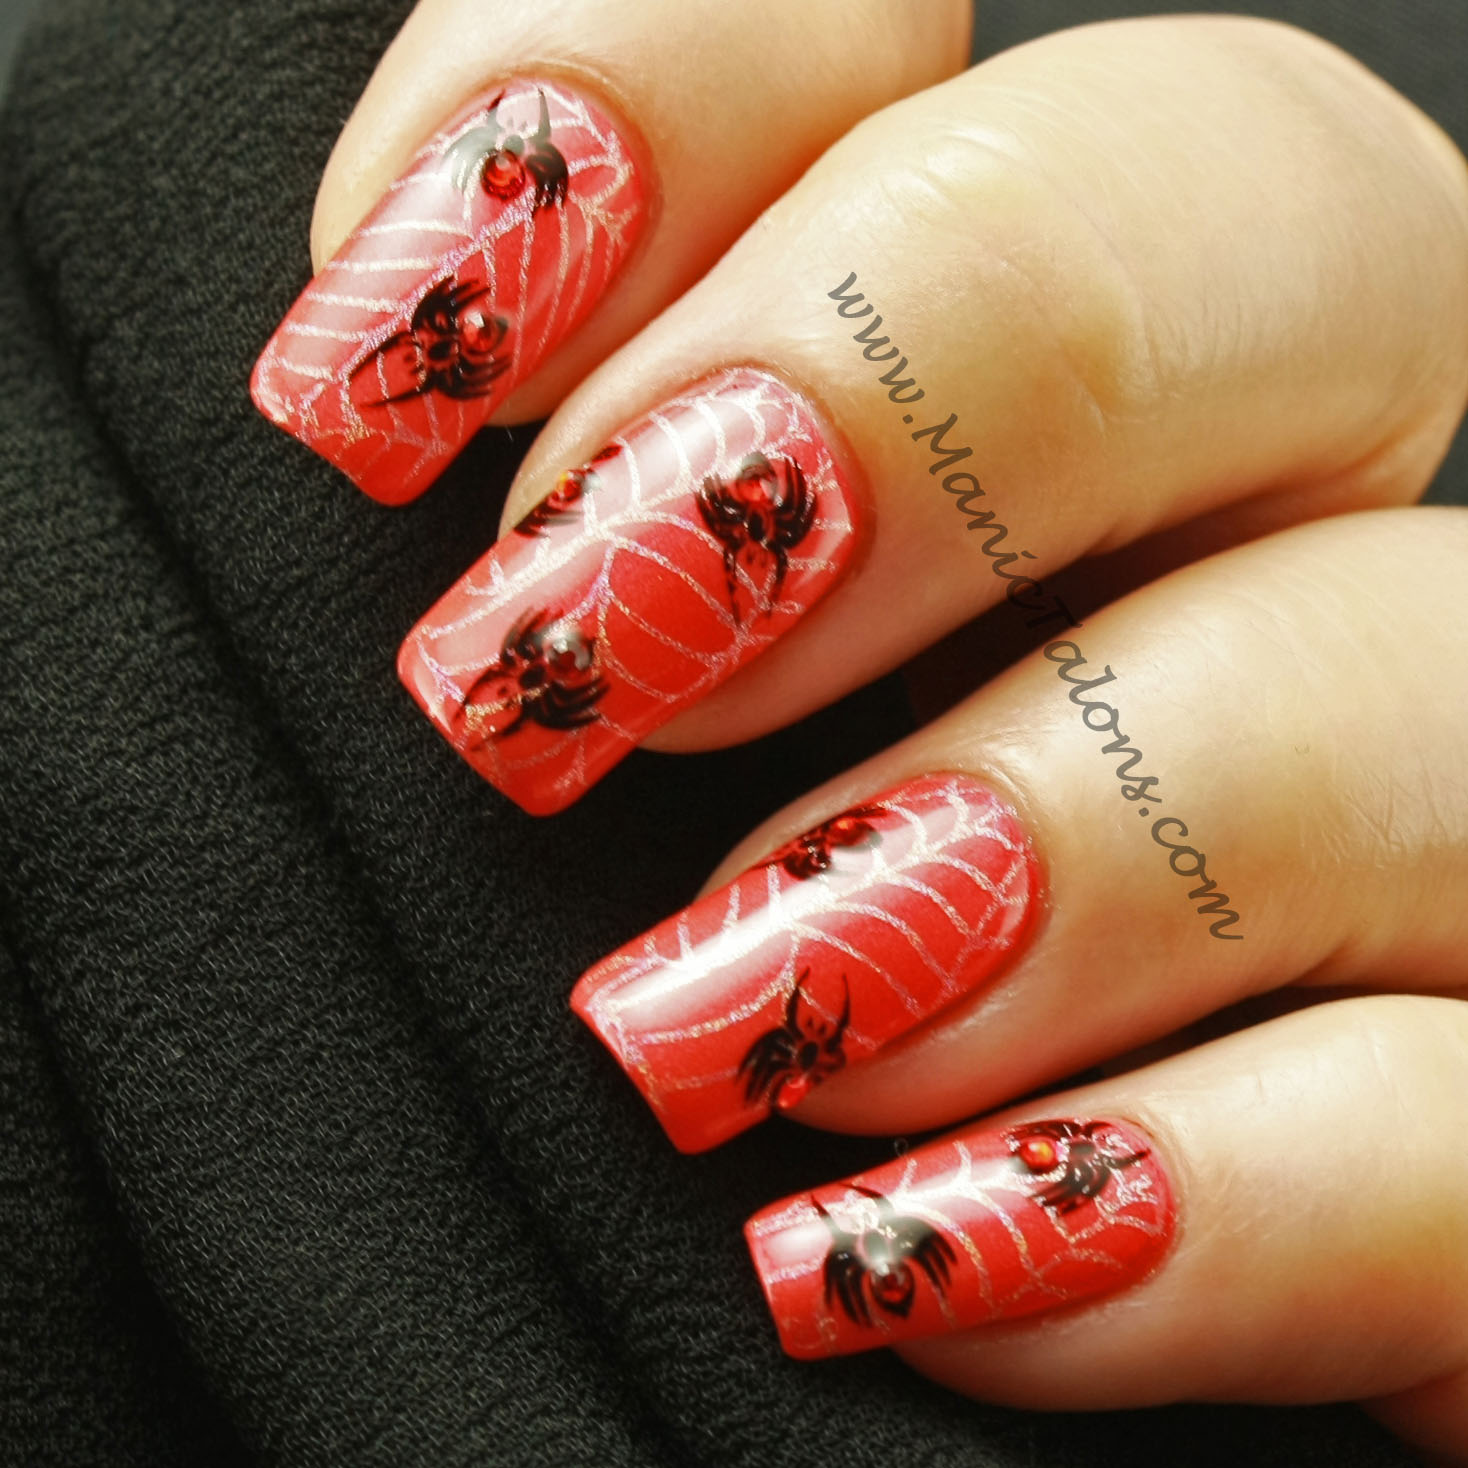 Manic talons gel polish and nail art blog weekly mani happy stamping nail art prinsesfo Gallery